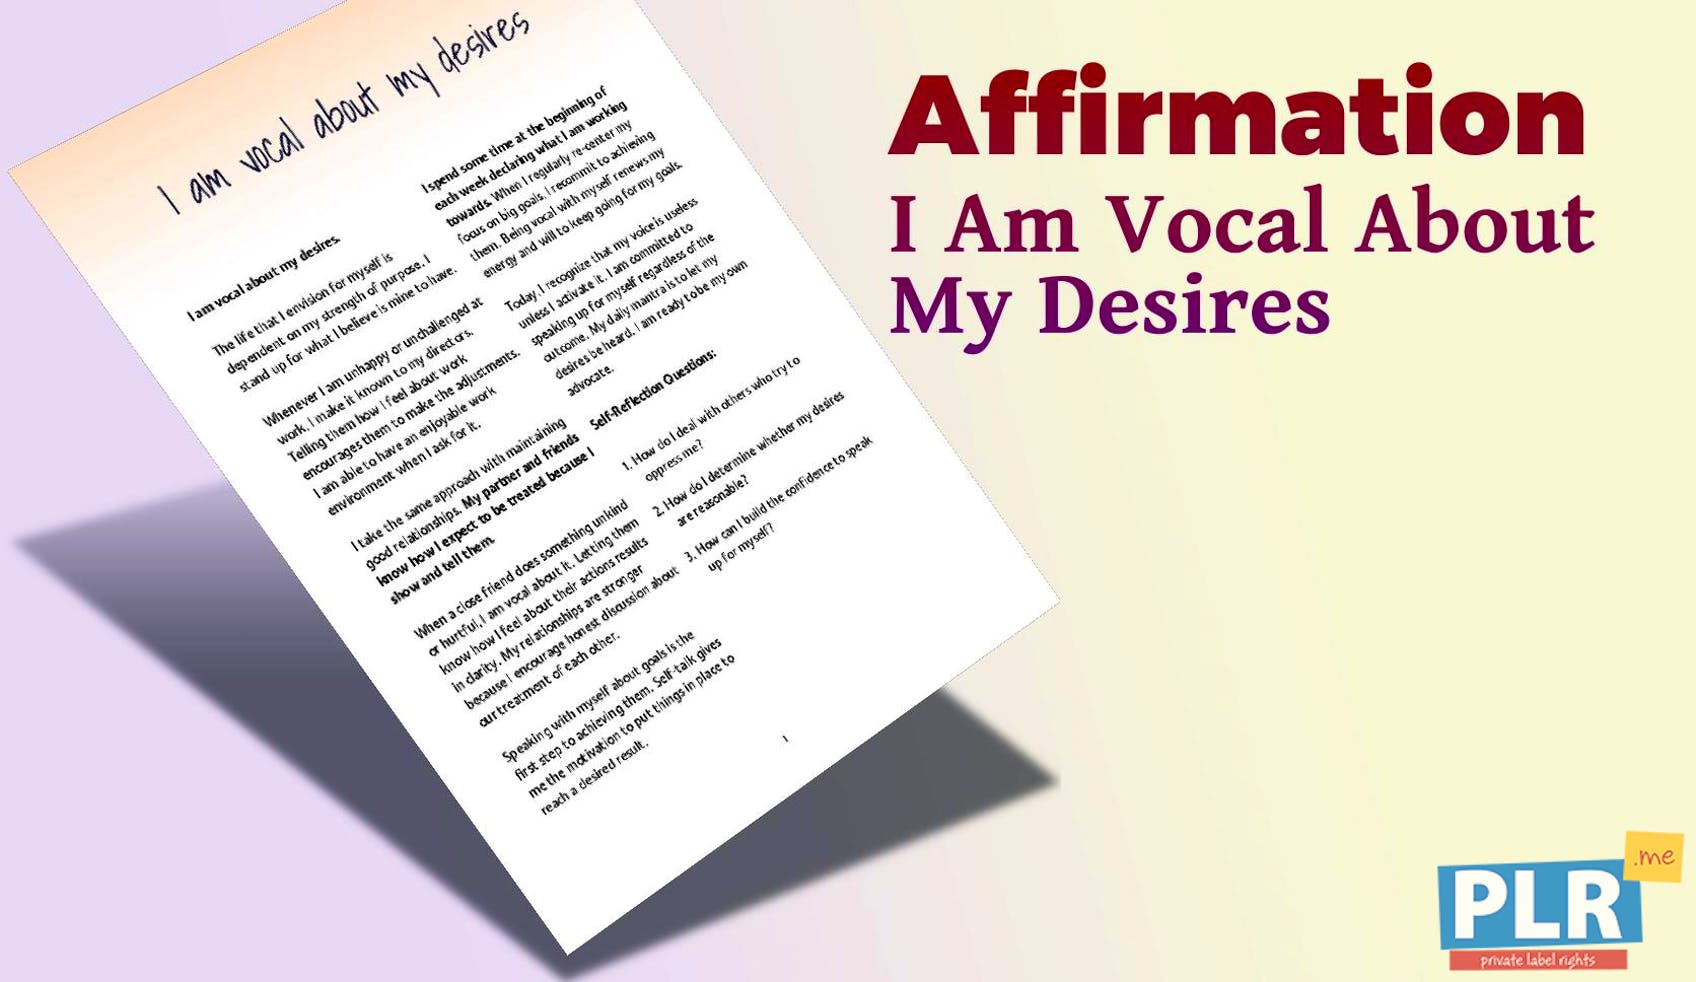 I Am Vocal About My Desires